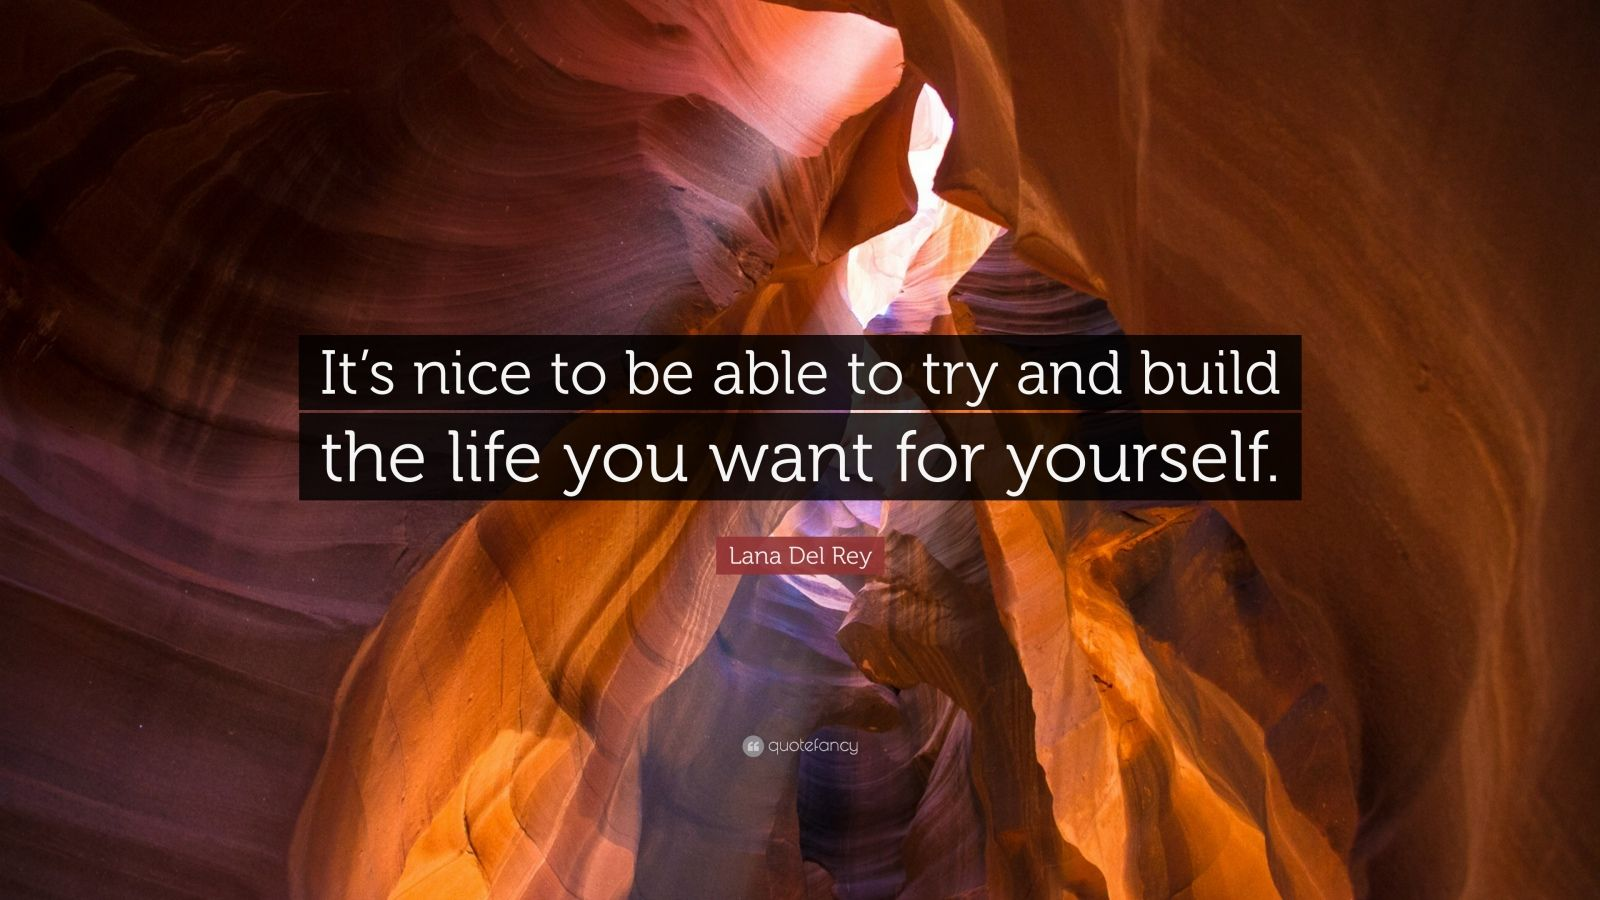 """Lana Del Rey Quote: """"It's nice to be able to try and build the life you want for yourself."""""""